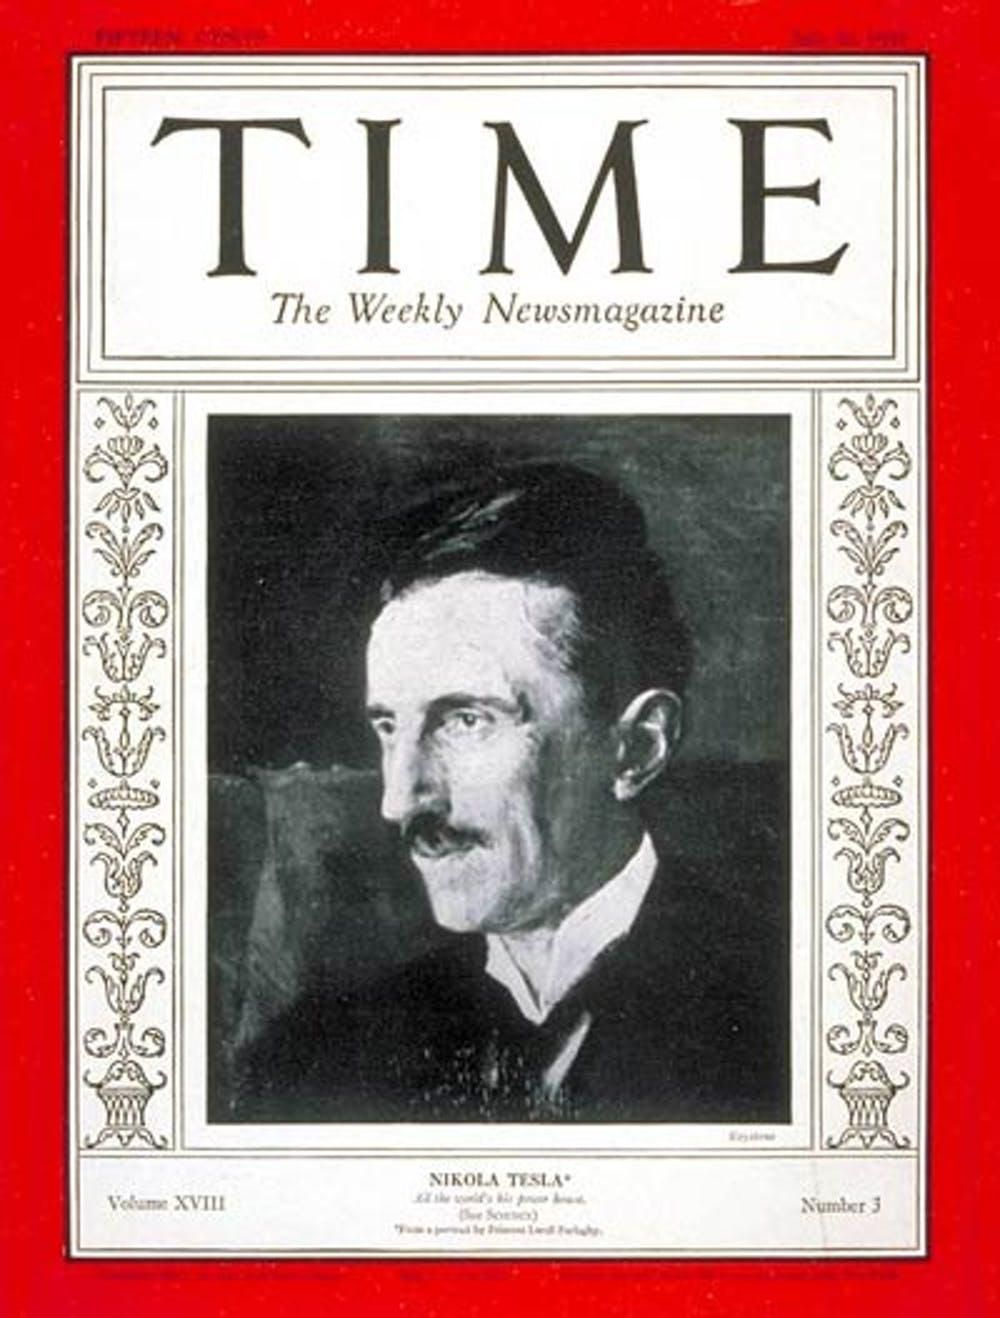 Tesla featured on the cover of Time magazine on his 75th birthday